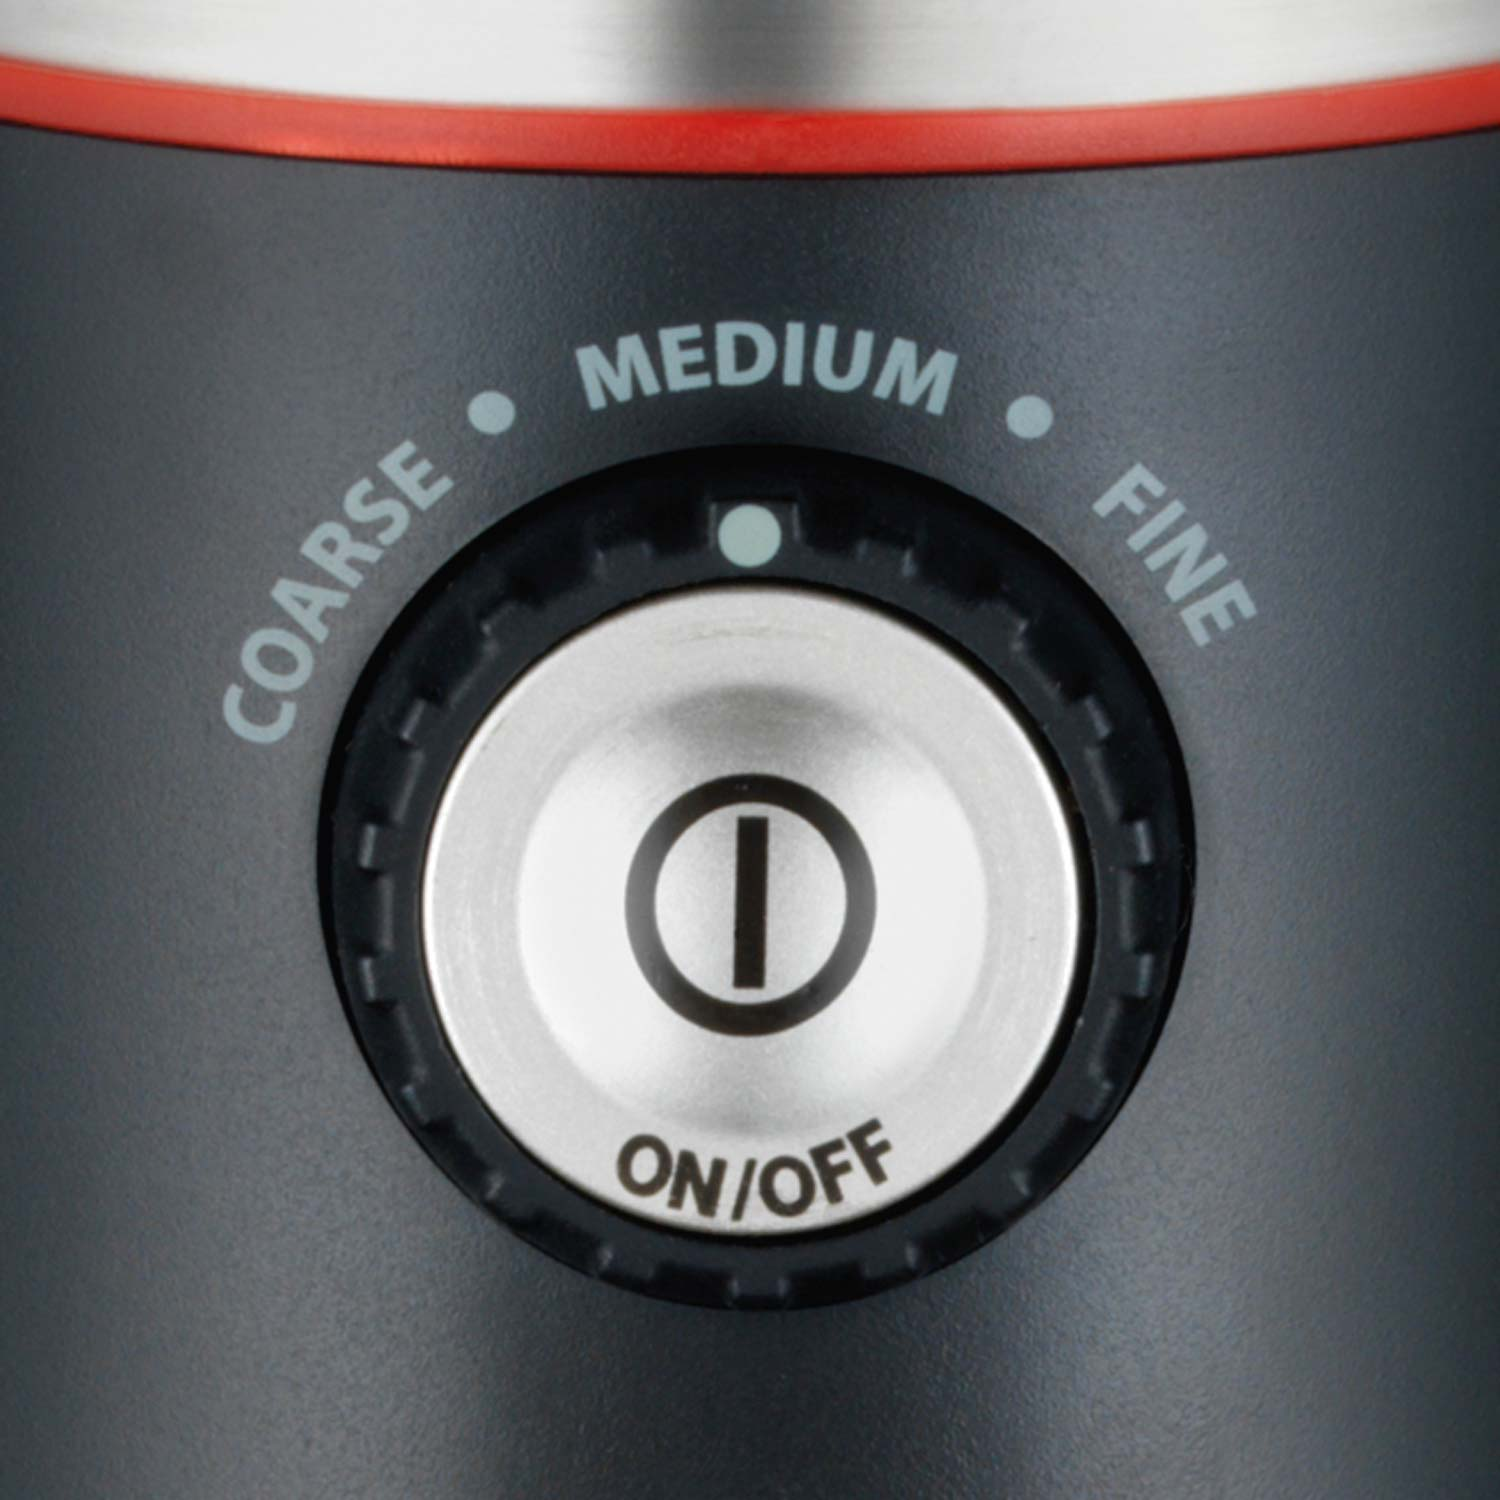 The Custom Grind Coffee Grinder features multiple grind settings so you can customize your coffee precisely.